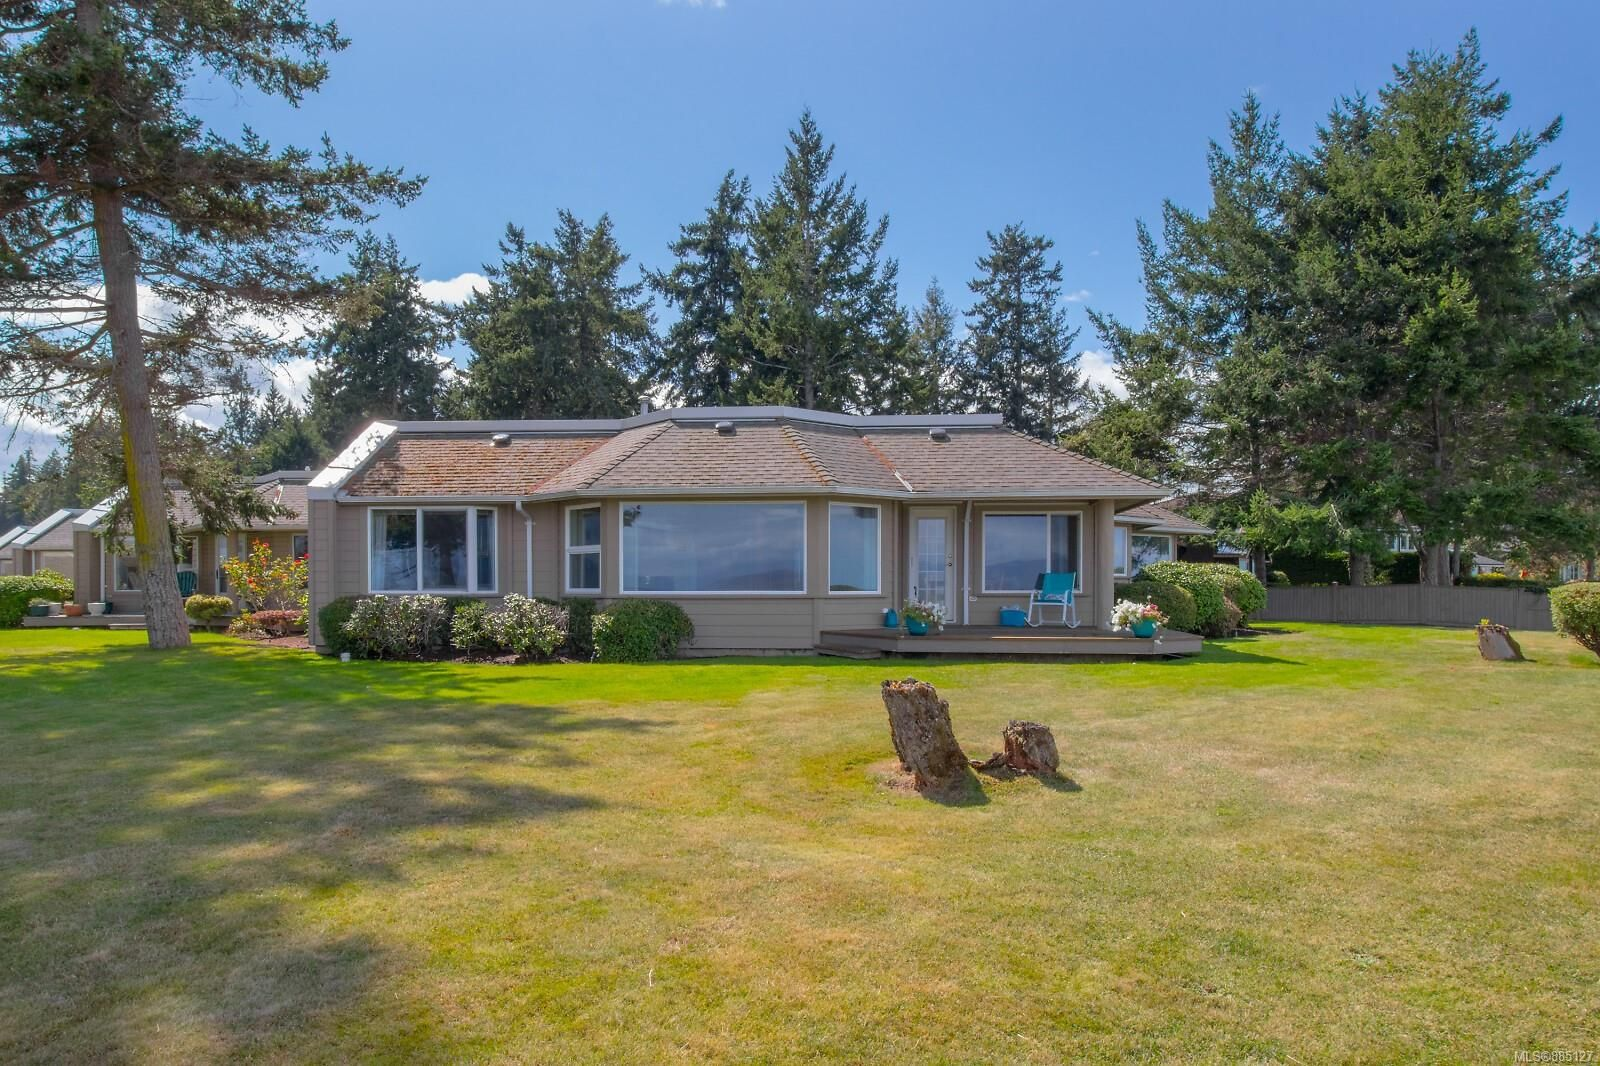 Photo 2: Photos: 26 529 Johnstone Rd in : PQ French Creek Row/Townhouse for sale (Parksville/Qualicum)  : MLS®# 885127